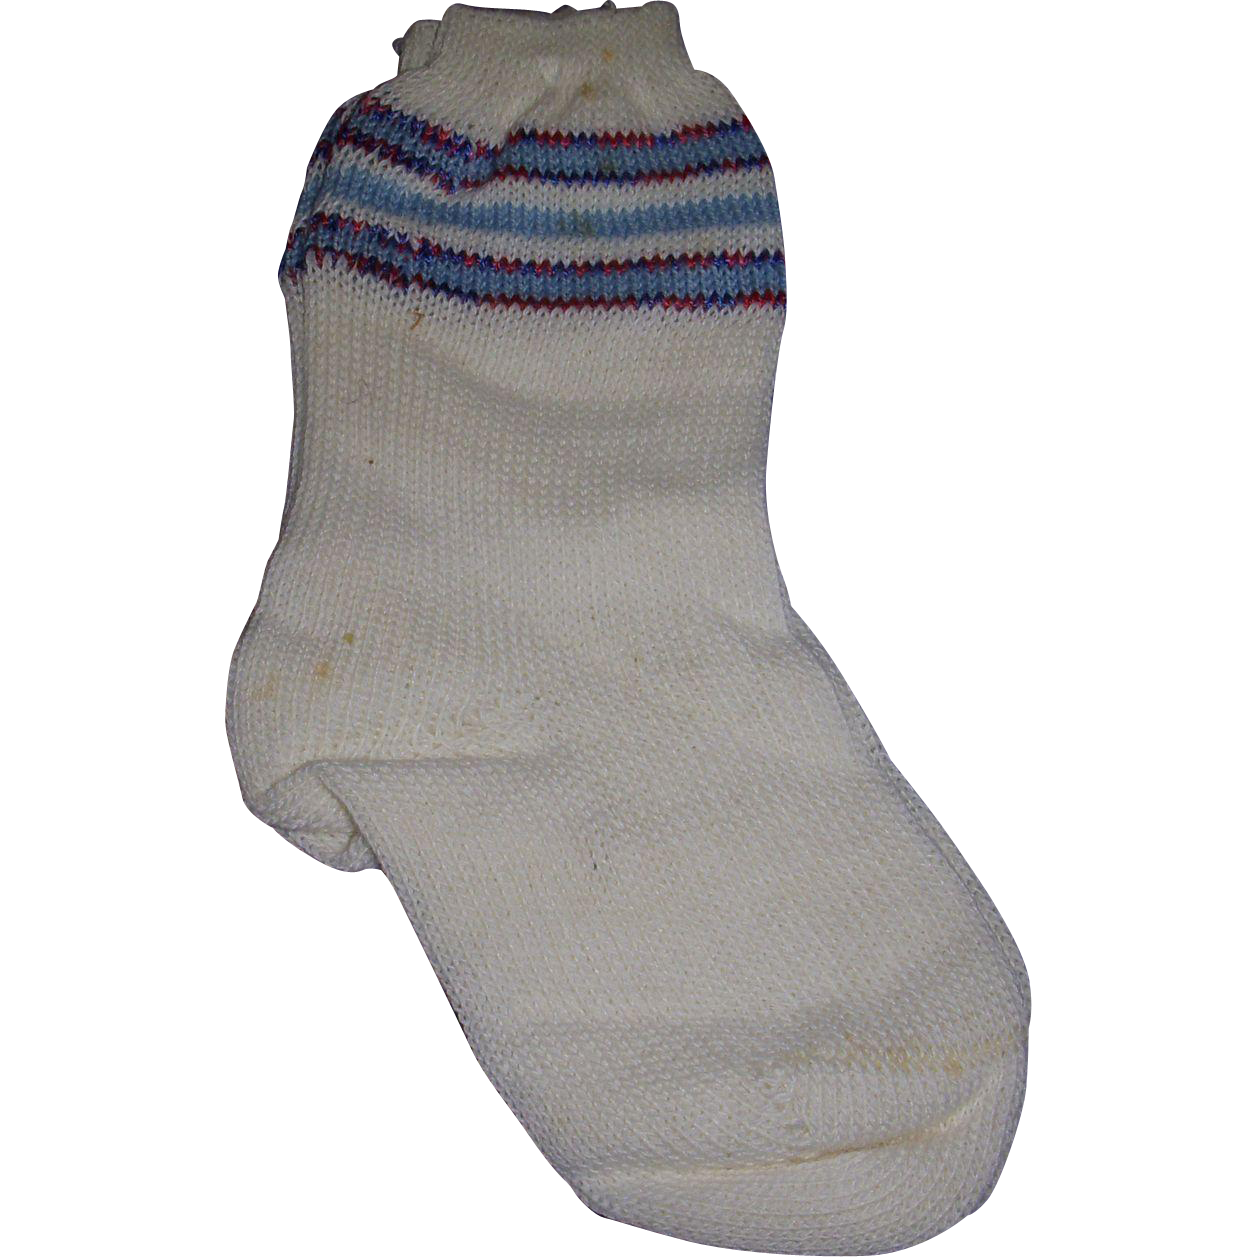 Vintage Doll Socks Old Store Stock